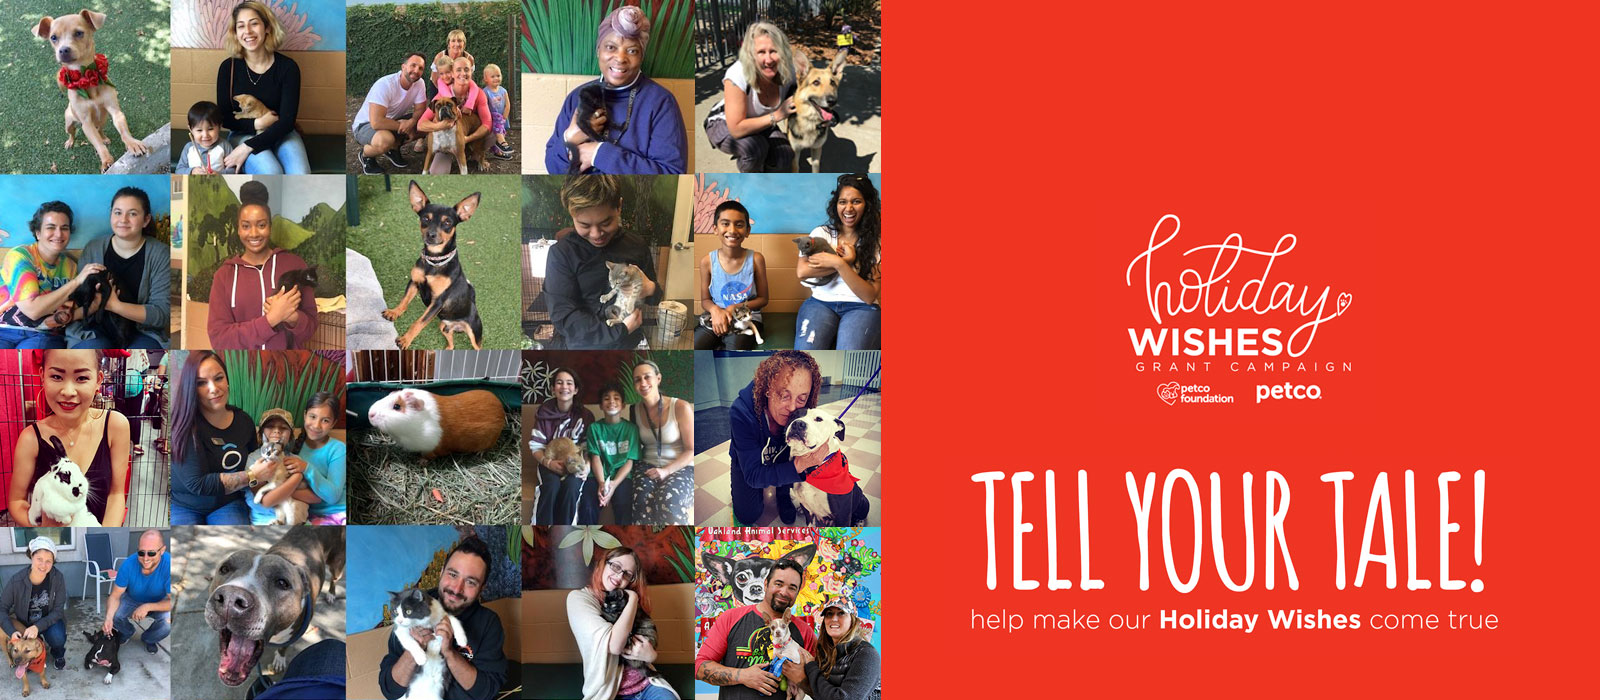 Share YOUR story! Win a Petco shopping spree and help us win $100k!